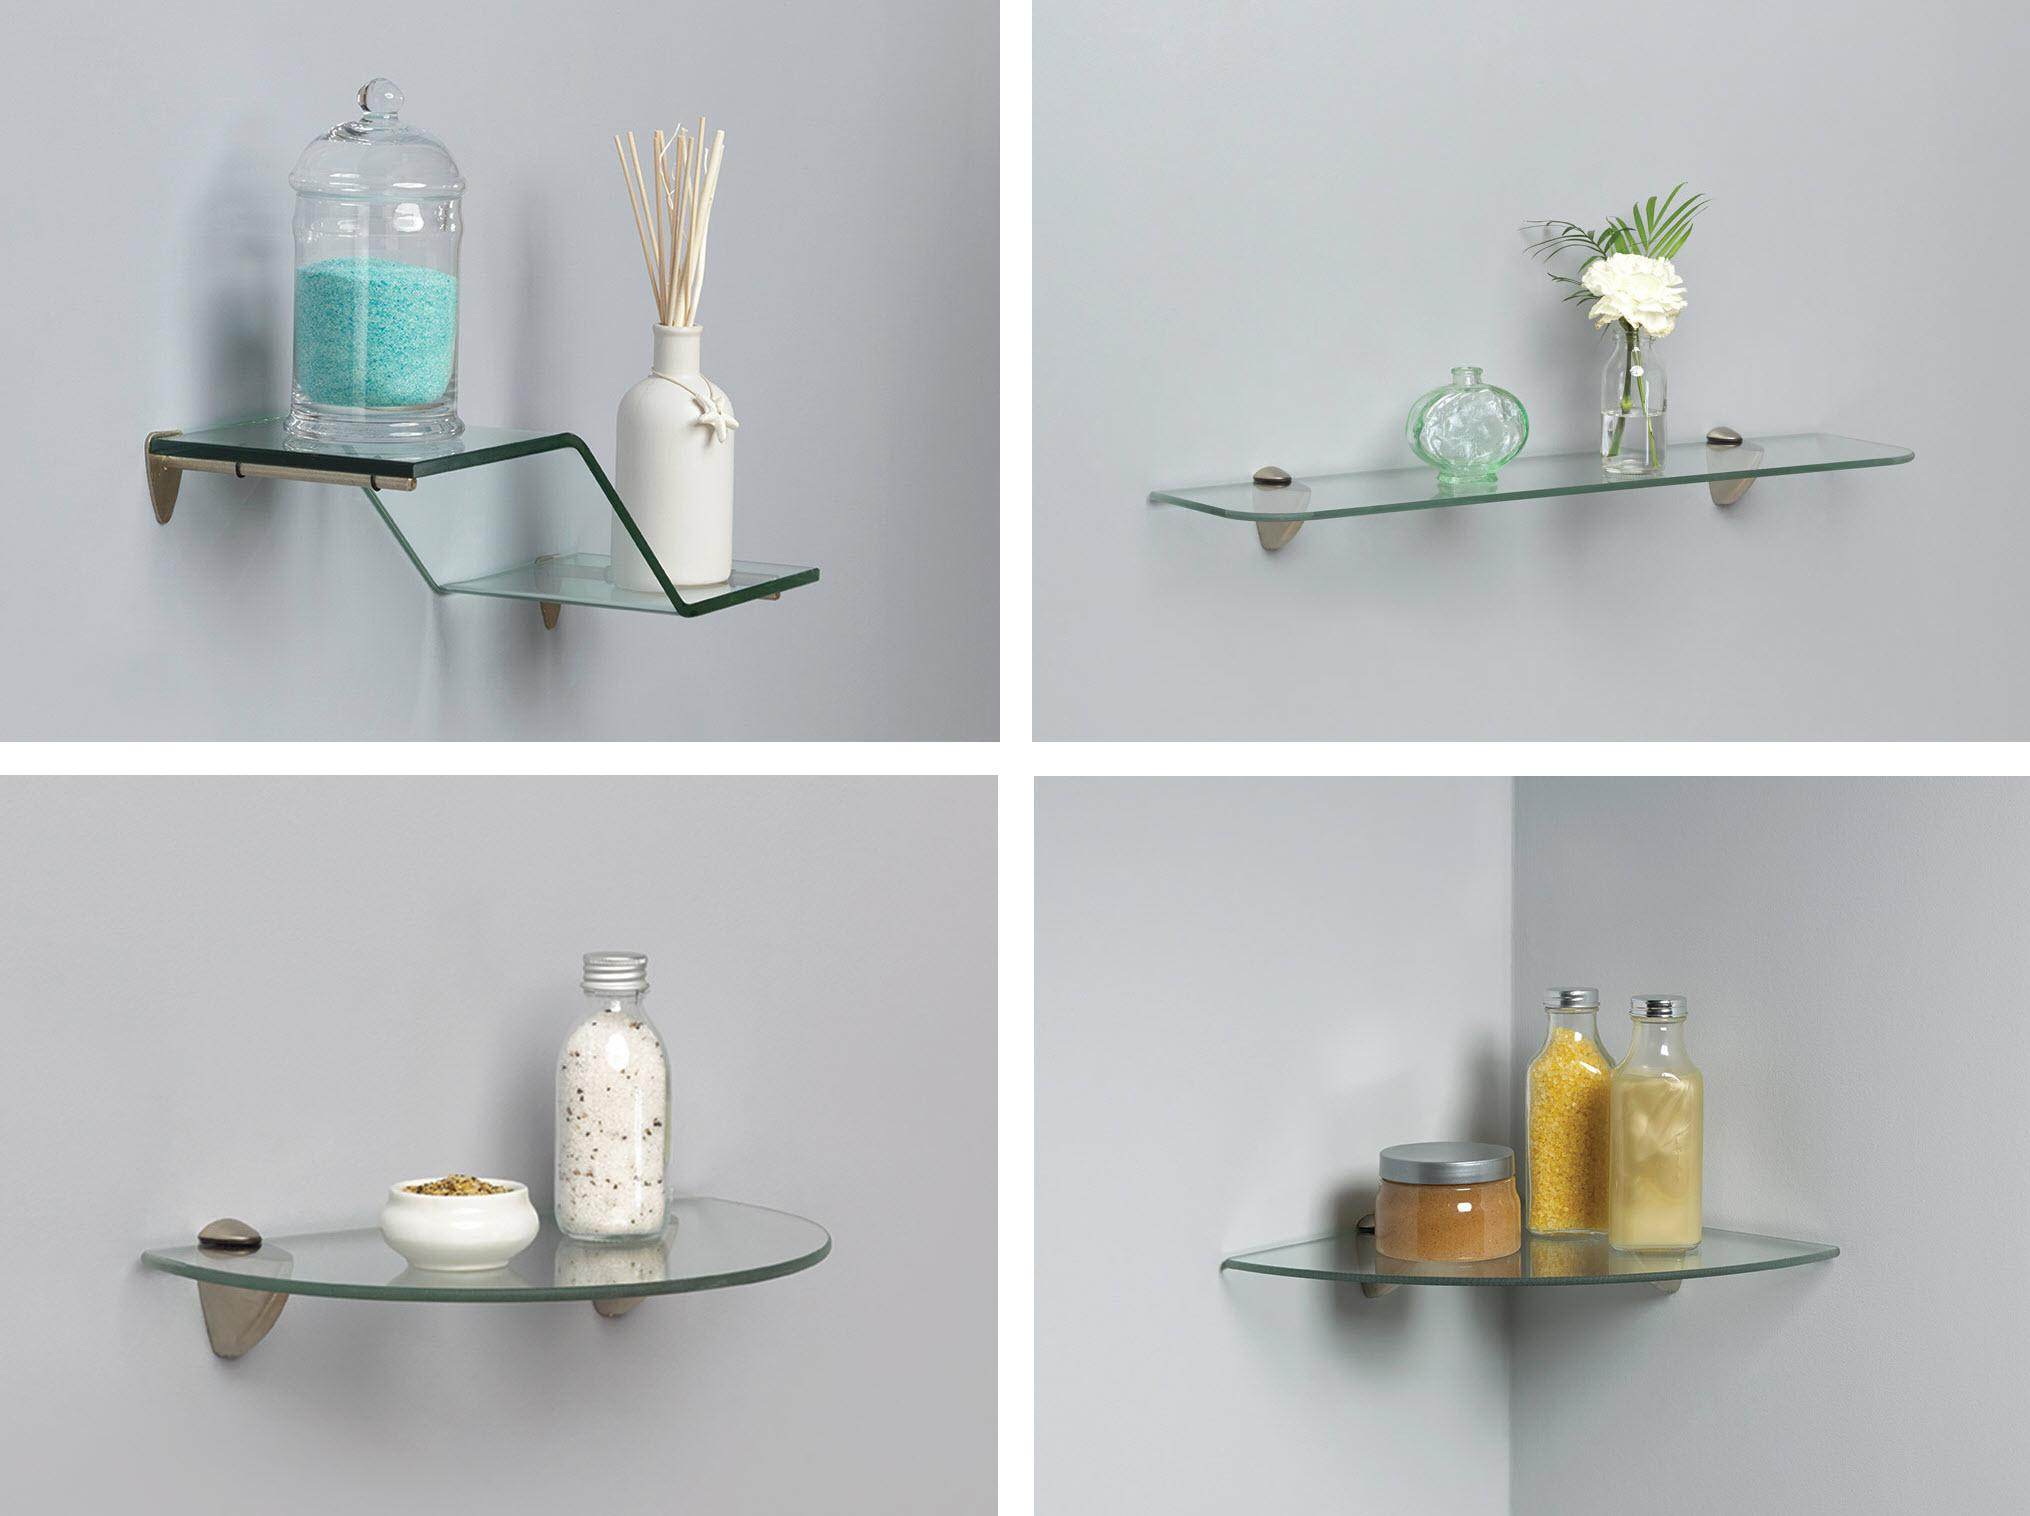 Shelf made kt 0134 624sn glass shelf kit - Bathroom glass corner shelves shower ...